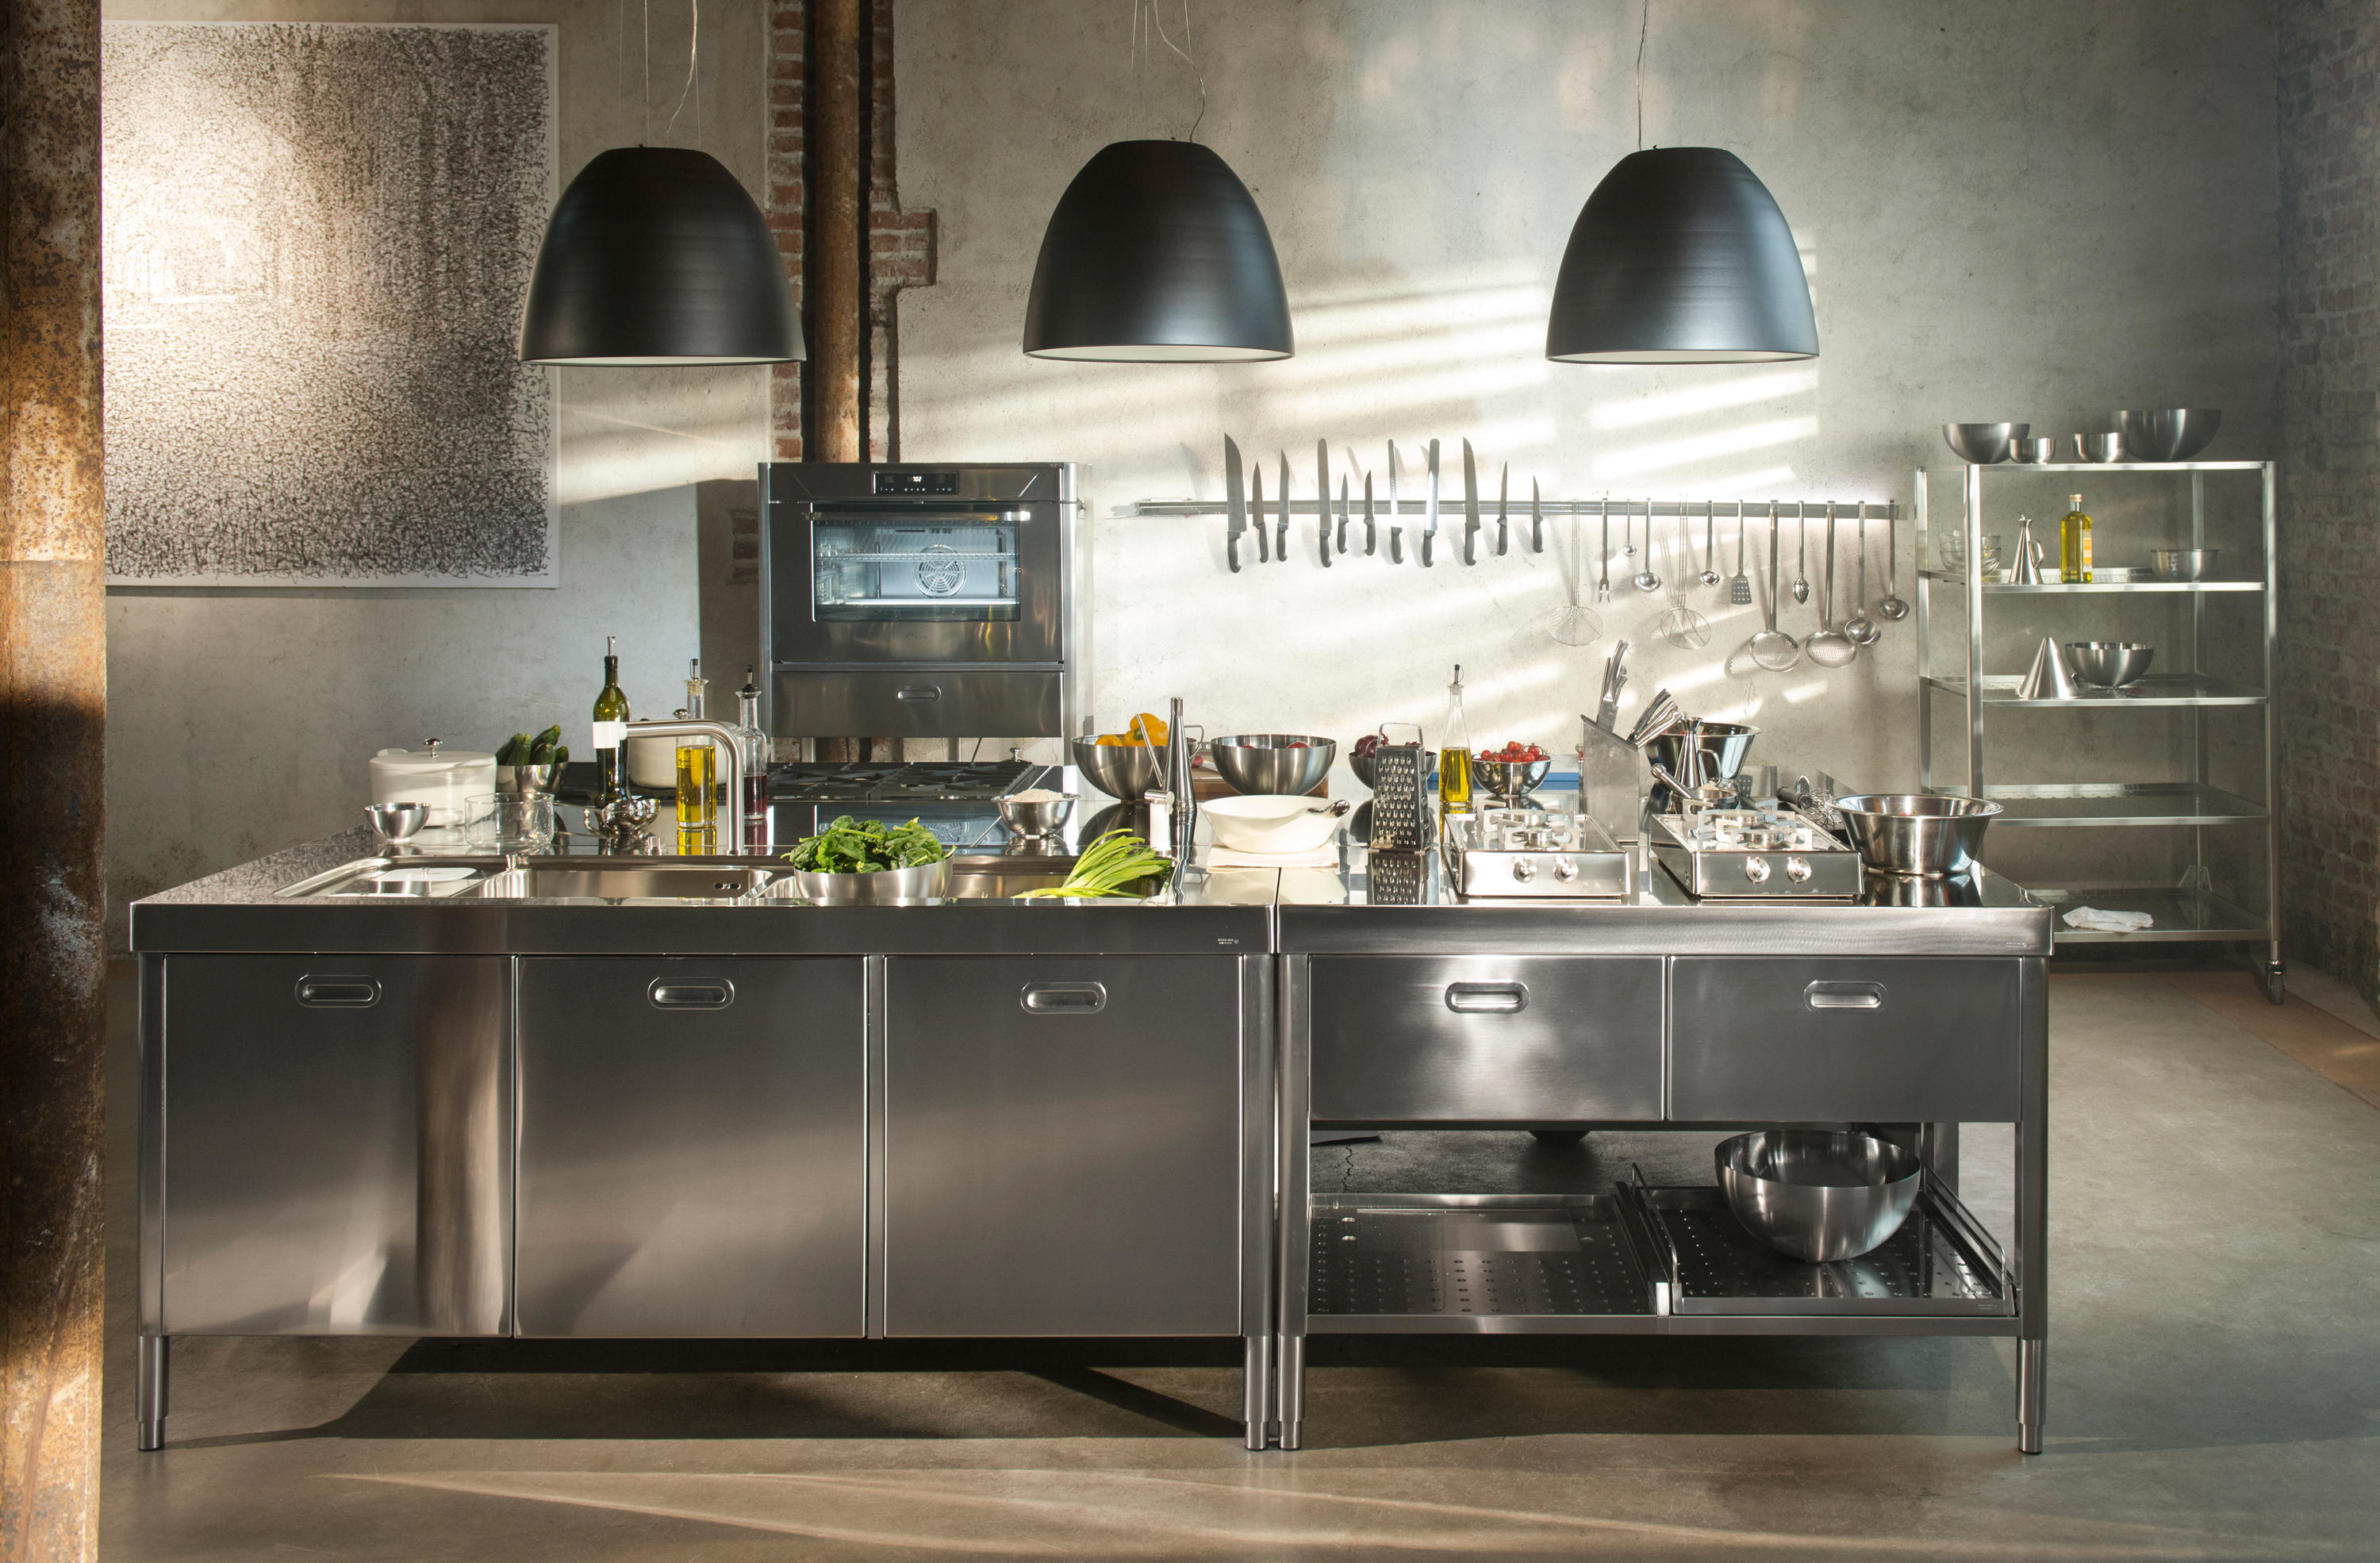 CUSTOM MADE KITCHENS - Compact kitchens from ALPES-INOX | Architonic